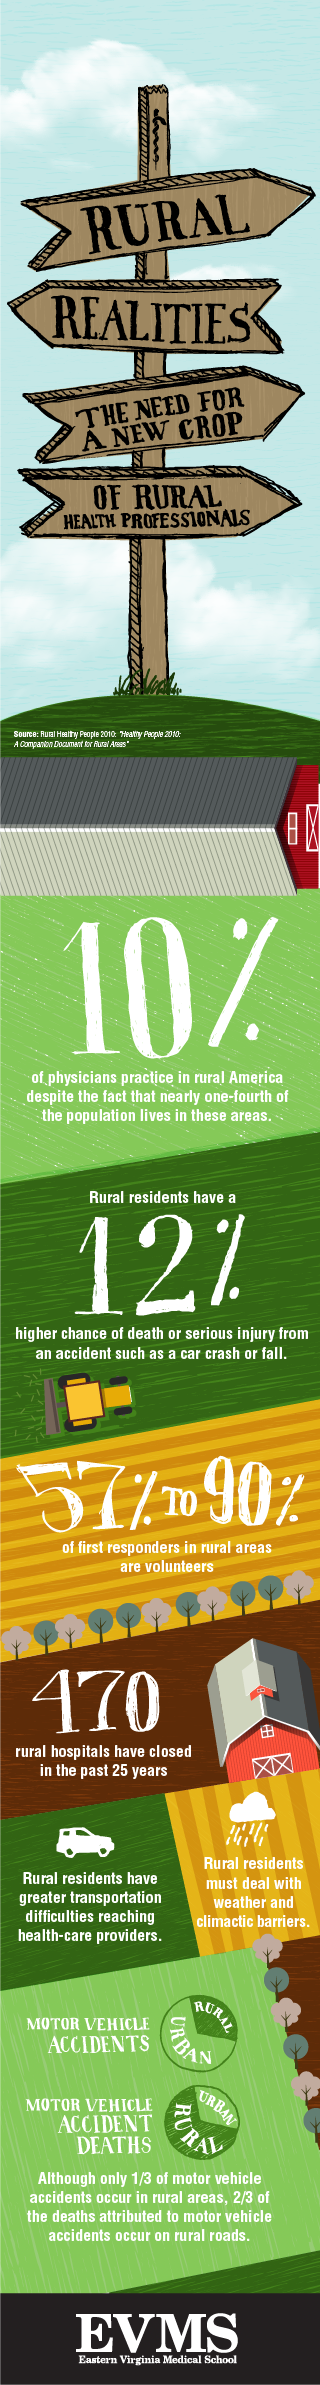 Rural Realities: The need for a new crop of rural health professionals infographic